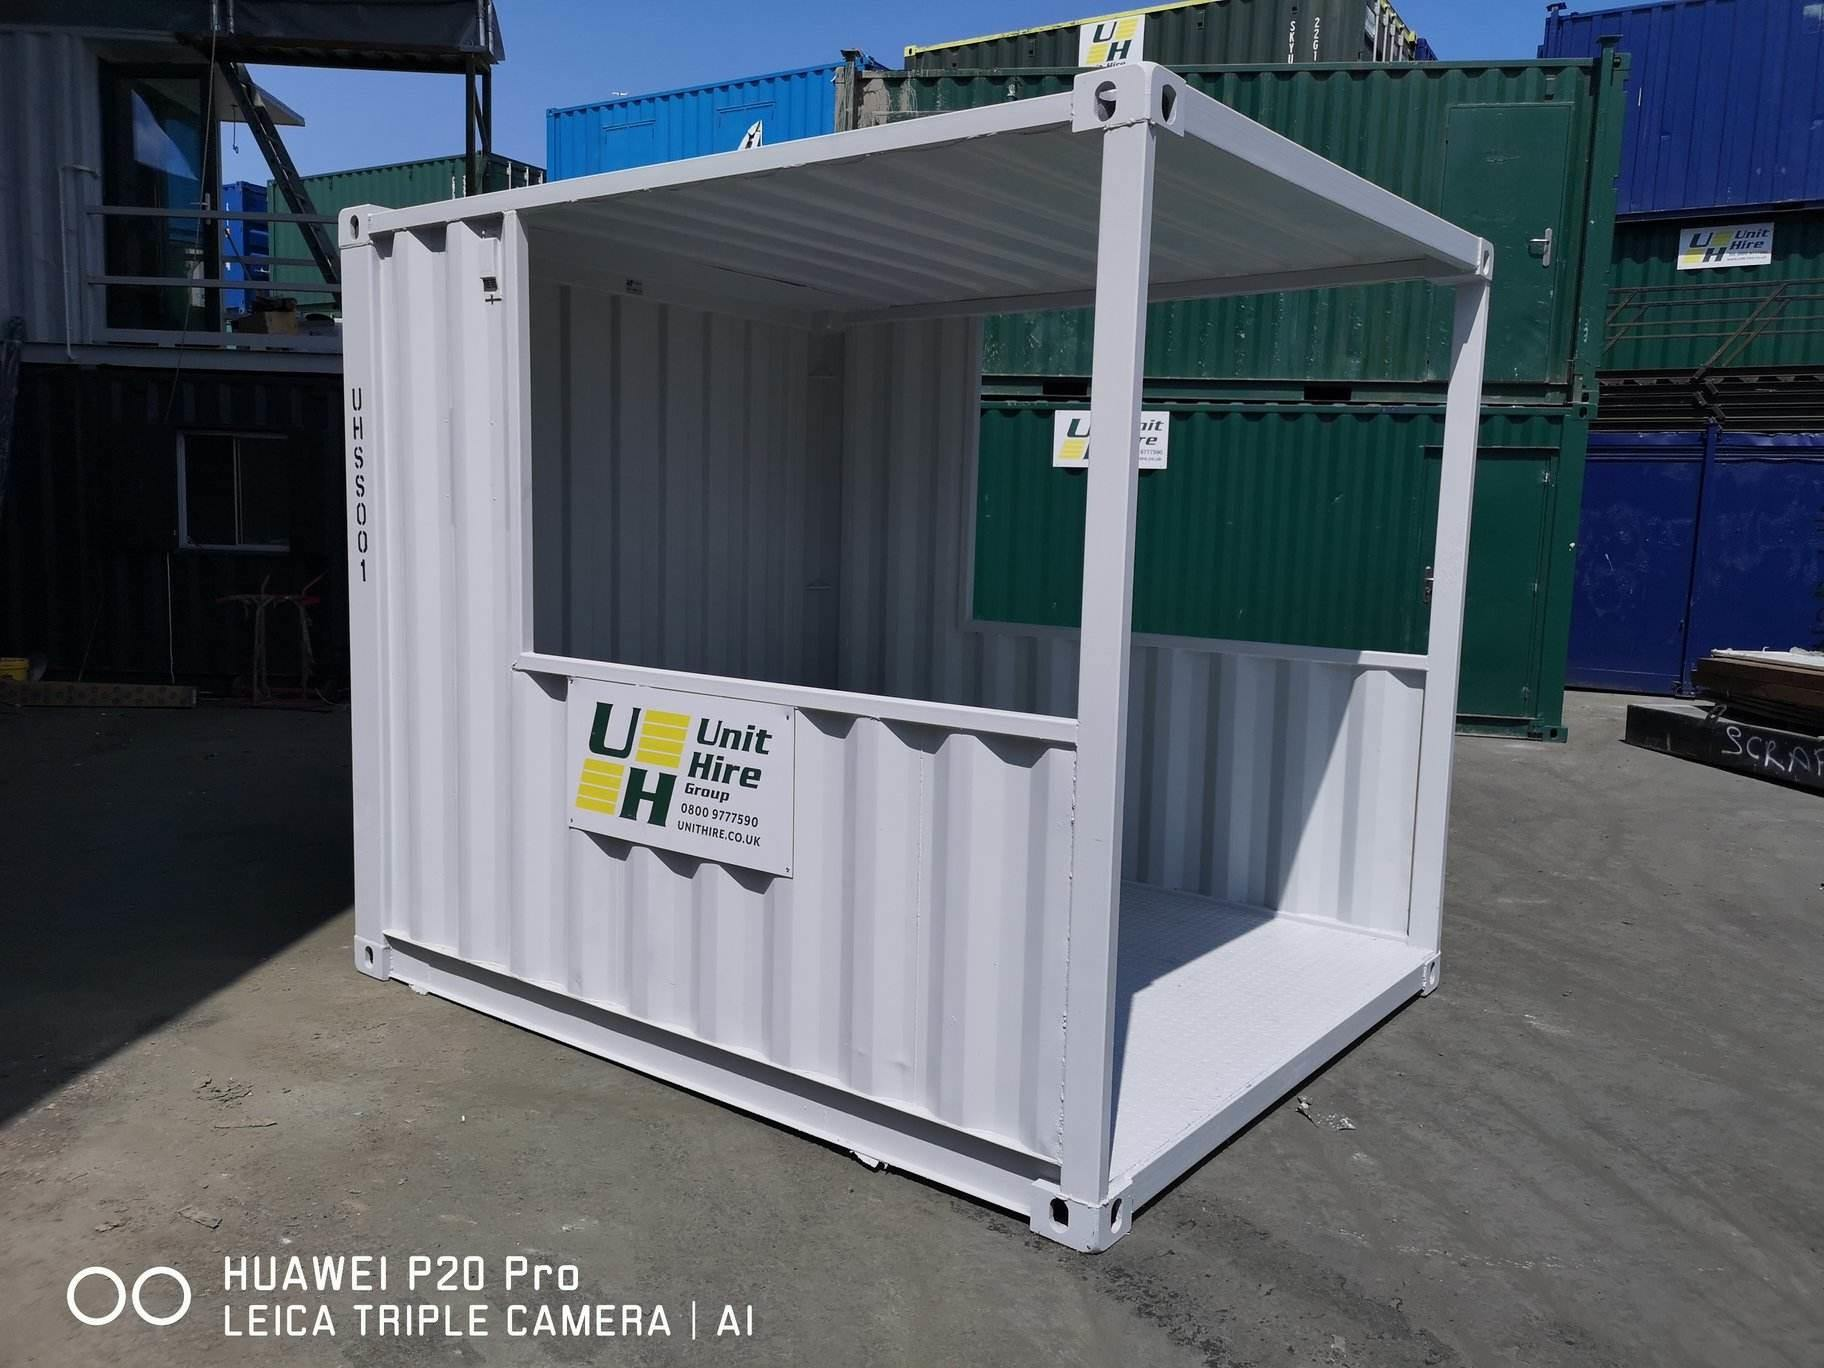 Grey Unit Hire smoking shelter amongst many shipping containers